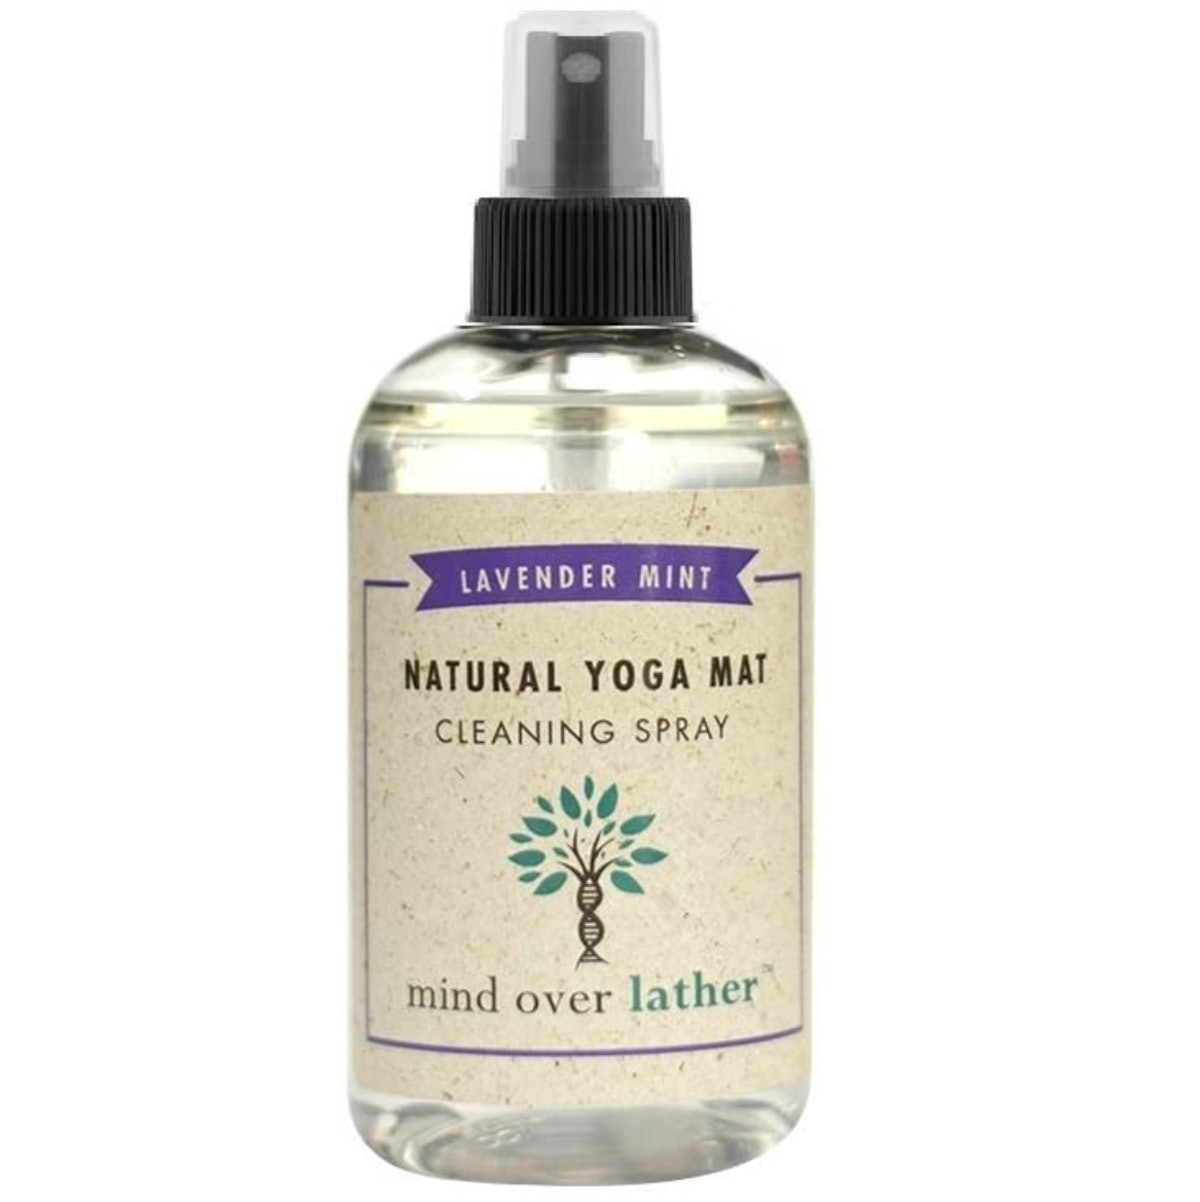 Mind Over Lather Yoga Mat Cleaning Spray (8 Ounces)